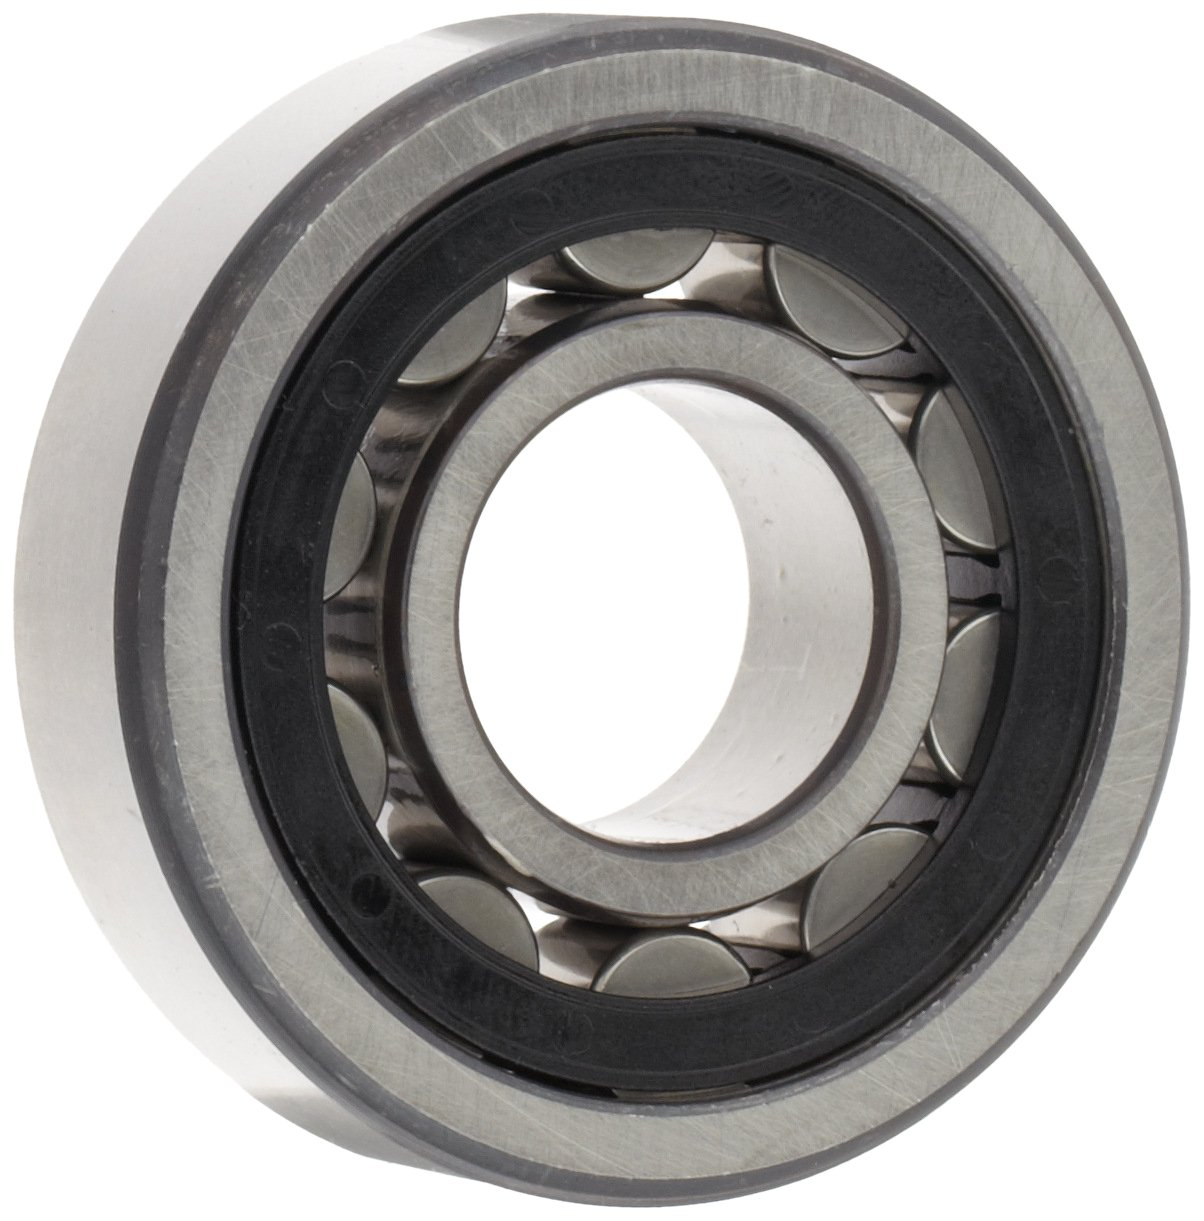 NU211-E-TVP2 Normal Clearance Straight Bore 100mm OD FAG NU211E-TVP2 Cylindrical Roller Bearing High Capacity Removable Inner Ring 21mm Width Schaeffler Technologies Co Single Row Polyamide Cage 55mm ID